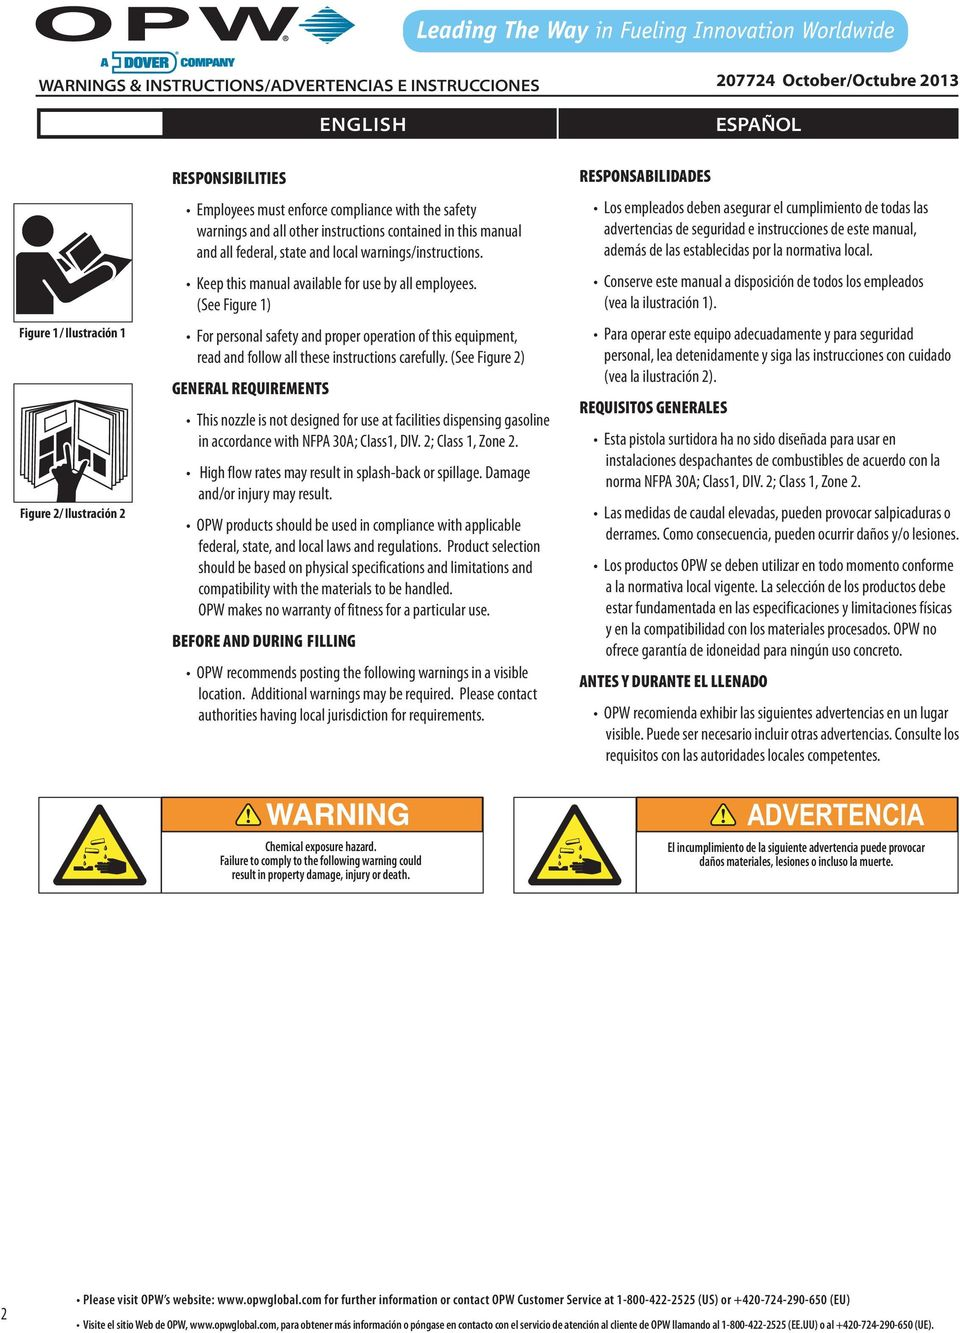 (See Figure 1) For personal safety and proper operation of this equipment, read and follow all these instructions carefully.